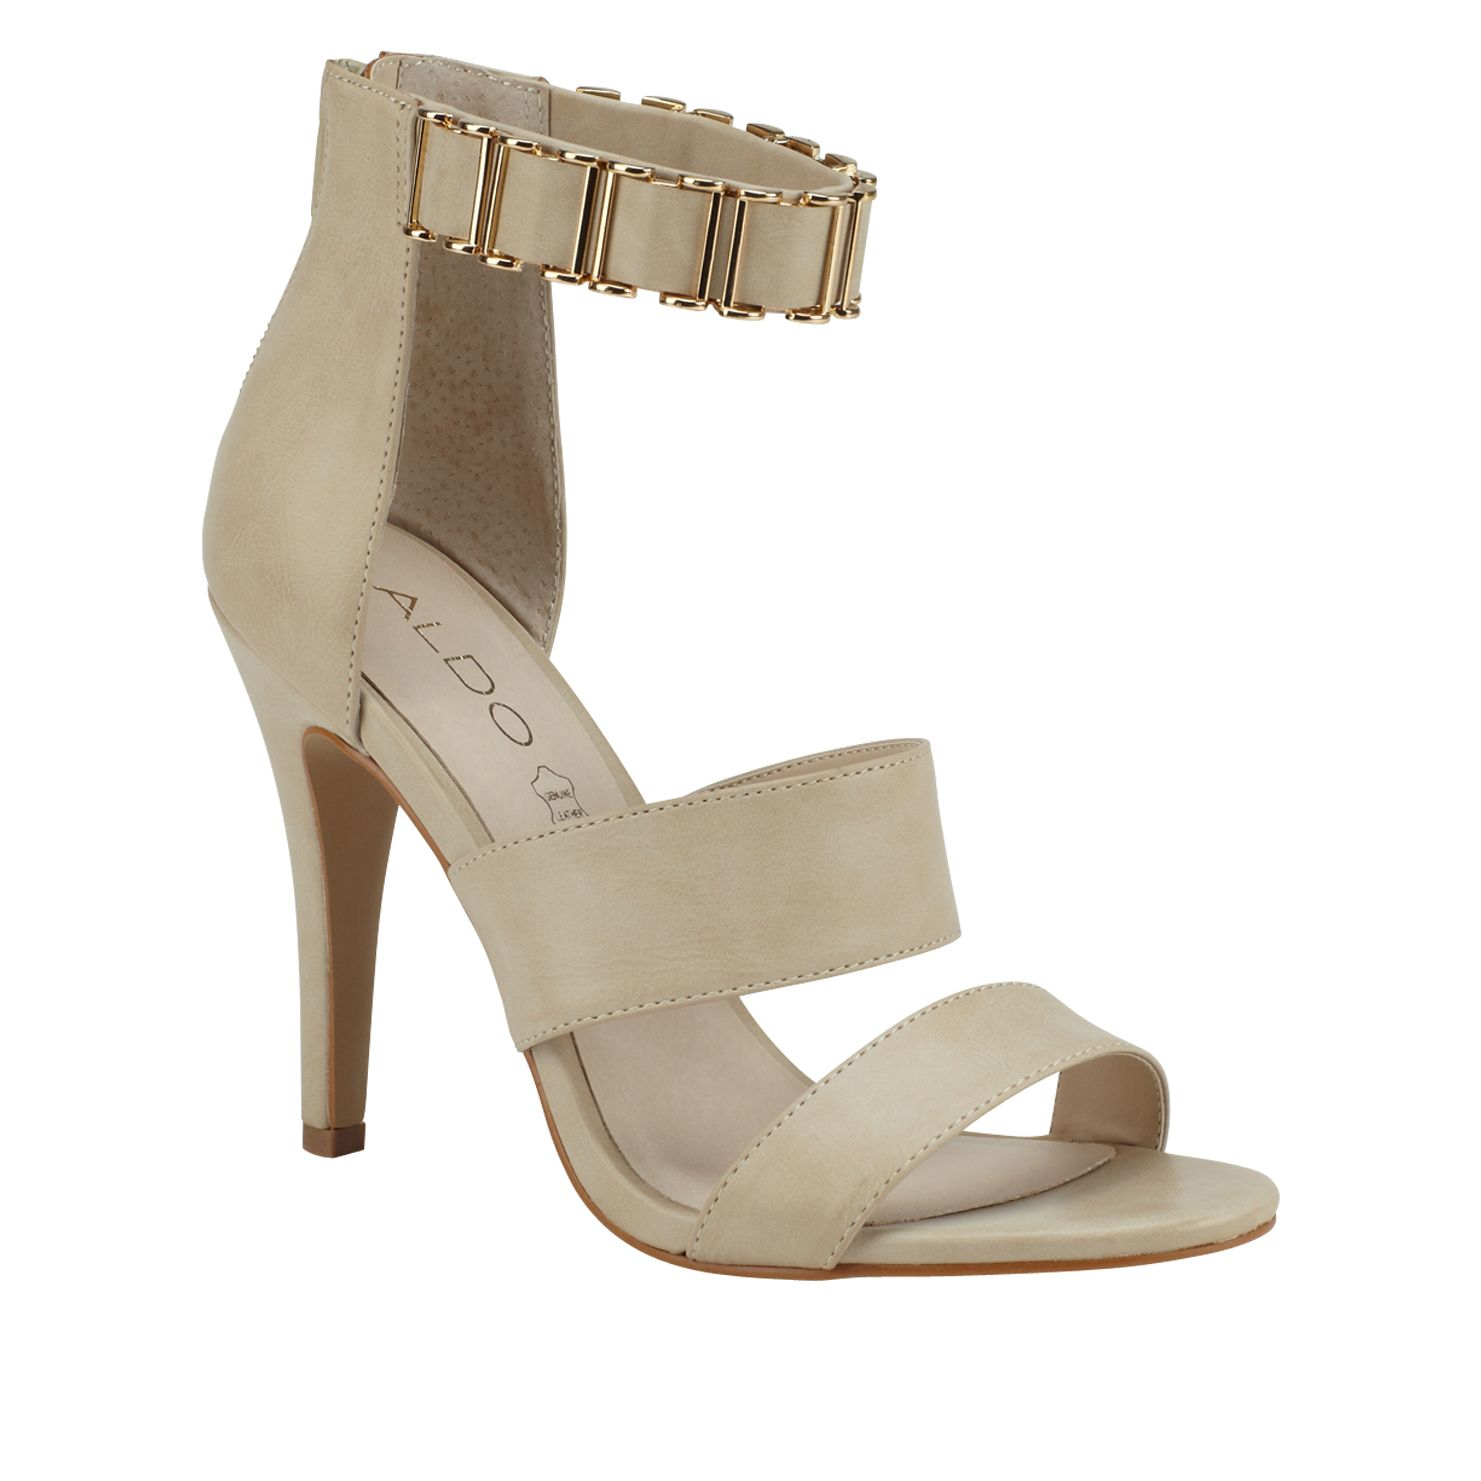 Campea ankle strap court sandals